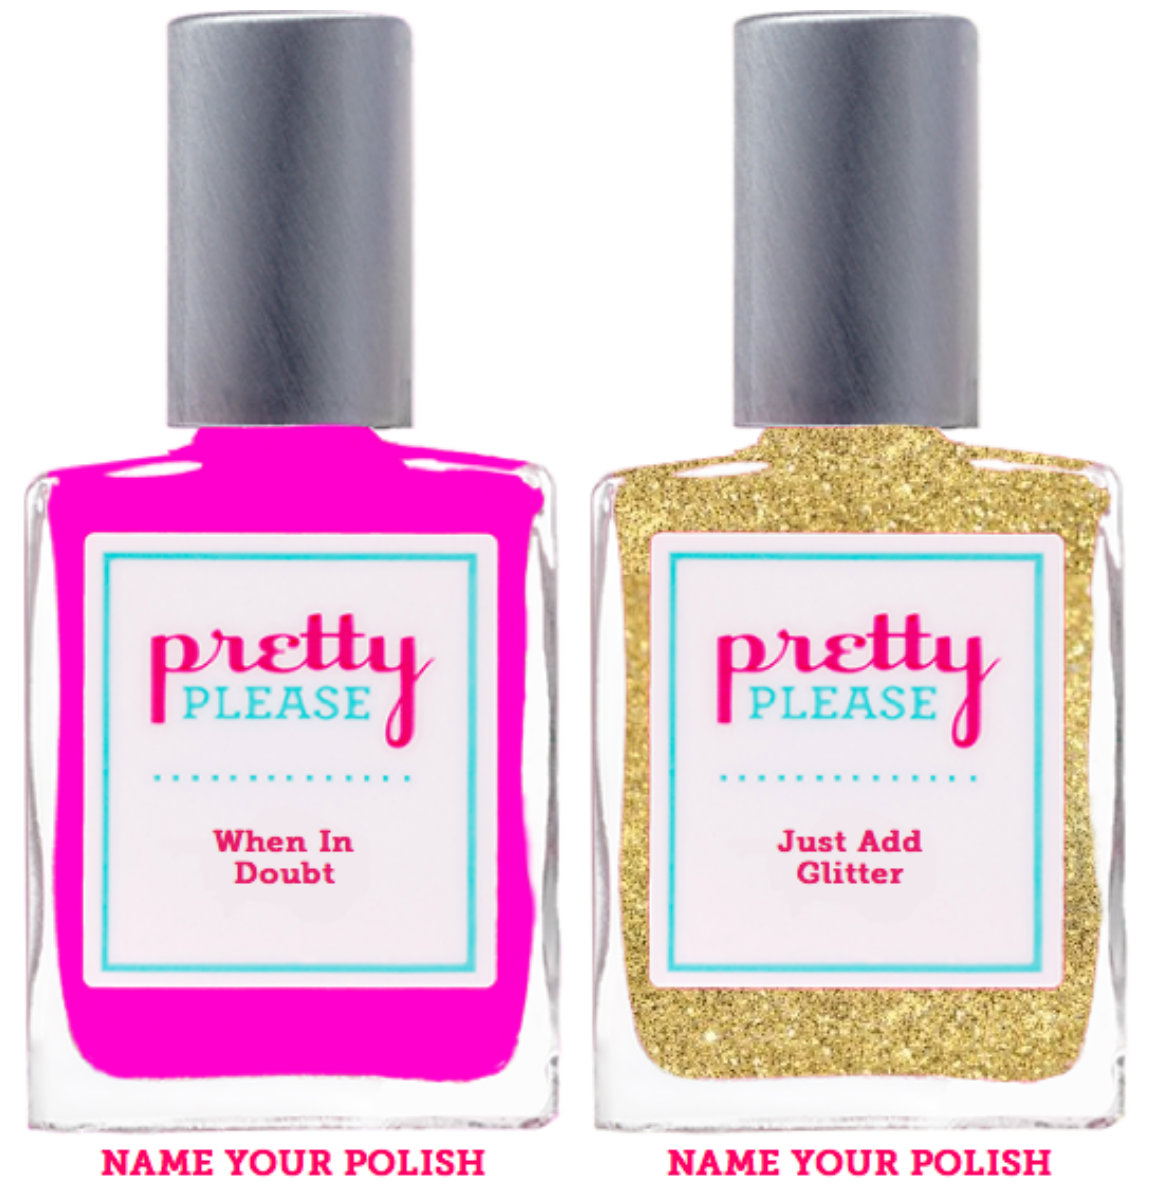 Spring Has Sprung Some New Nail Colors You Will Love! - Verbal Gold Blog